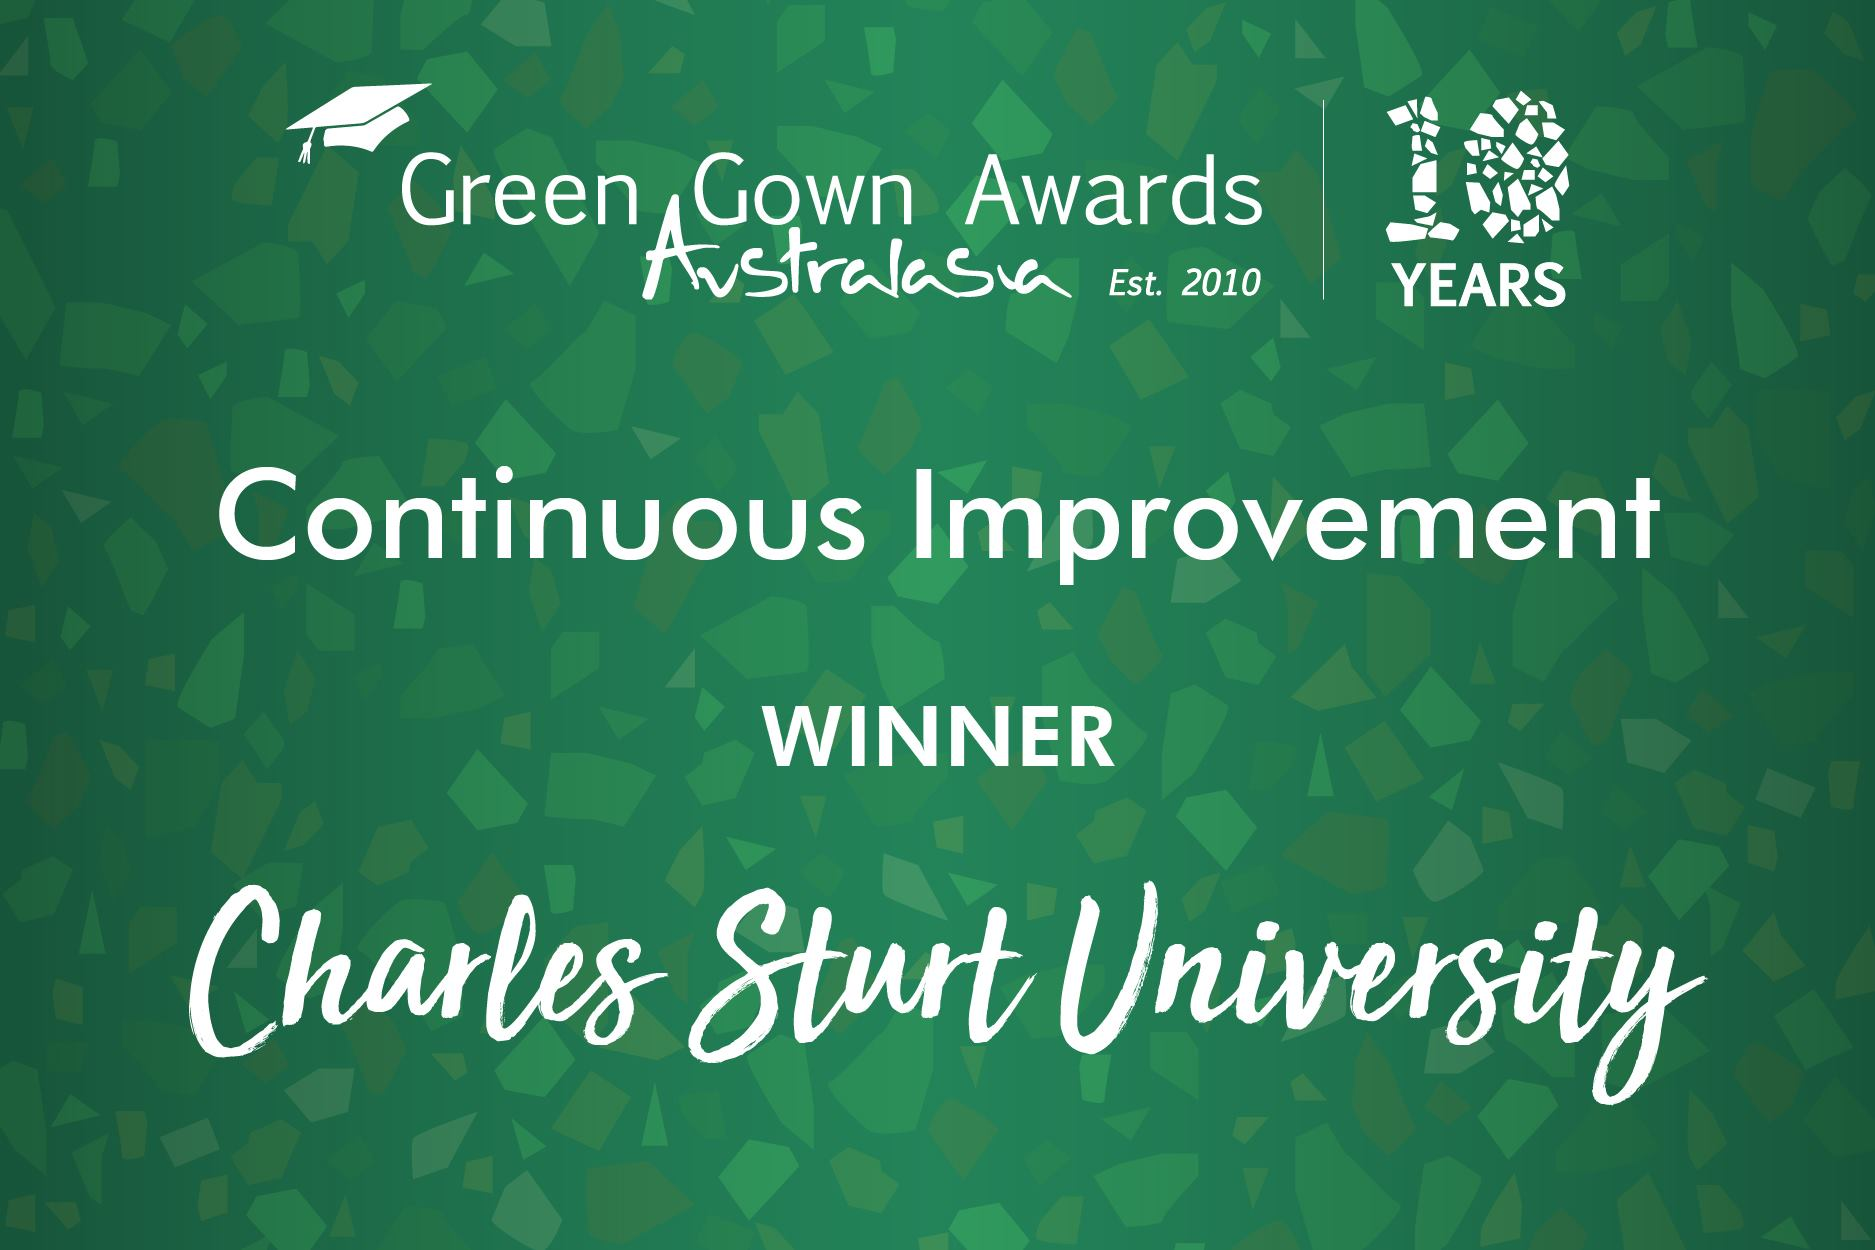 Green Gown Awards Continuous Improvement Winner 2019 - Charles Sturt University